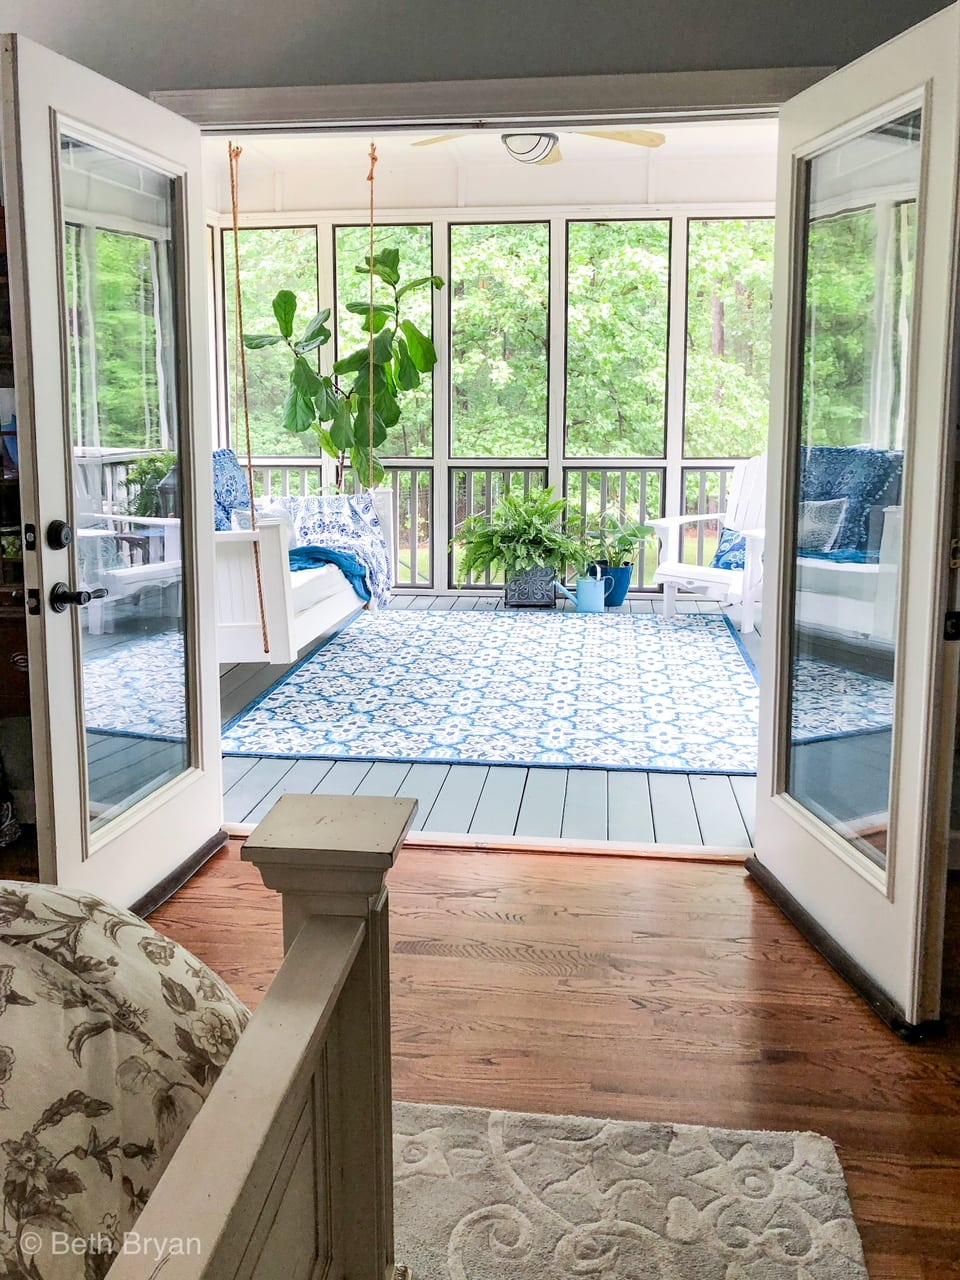 Blue and white porch decor with hanging swing and adirondack chairs